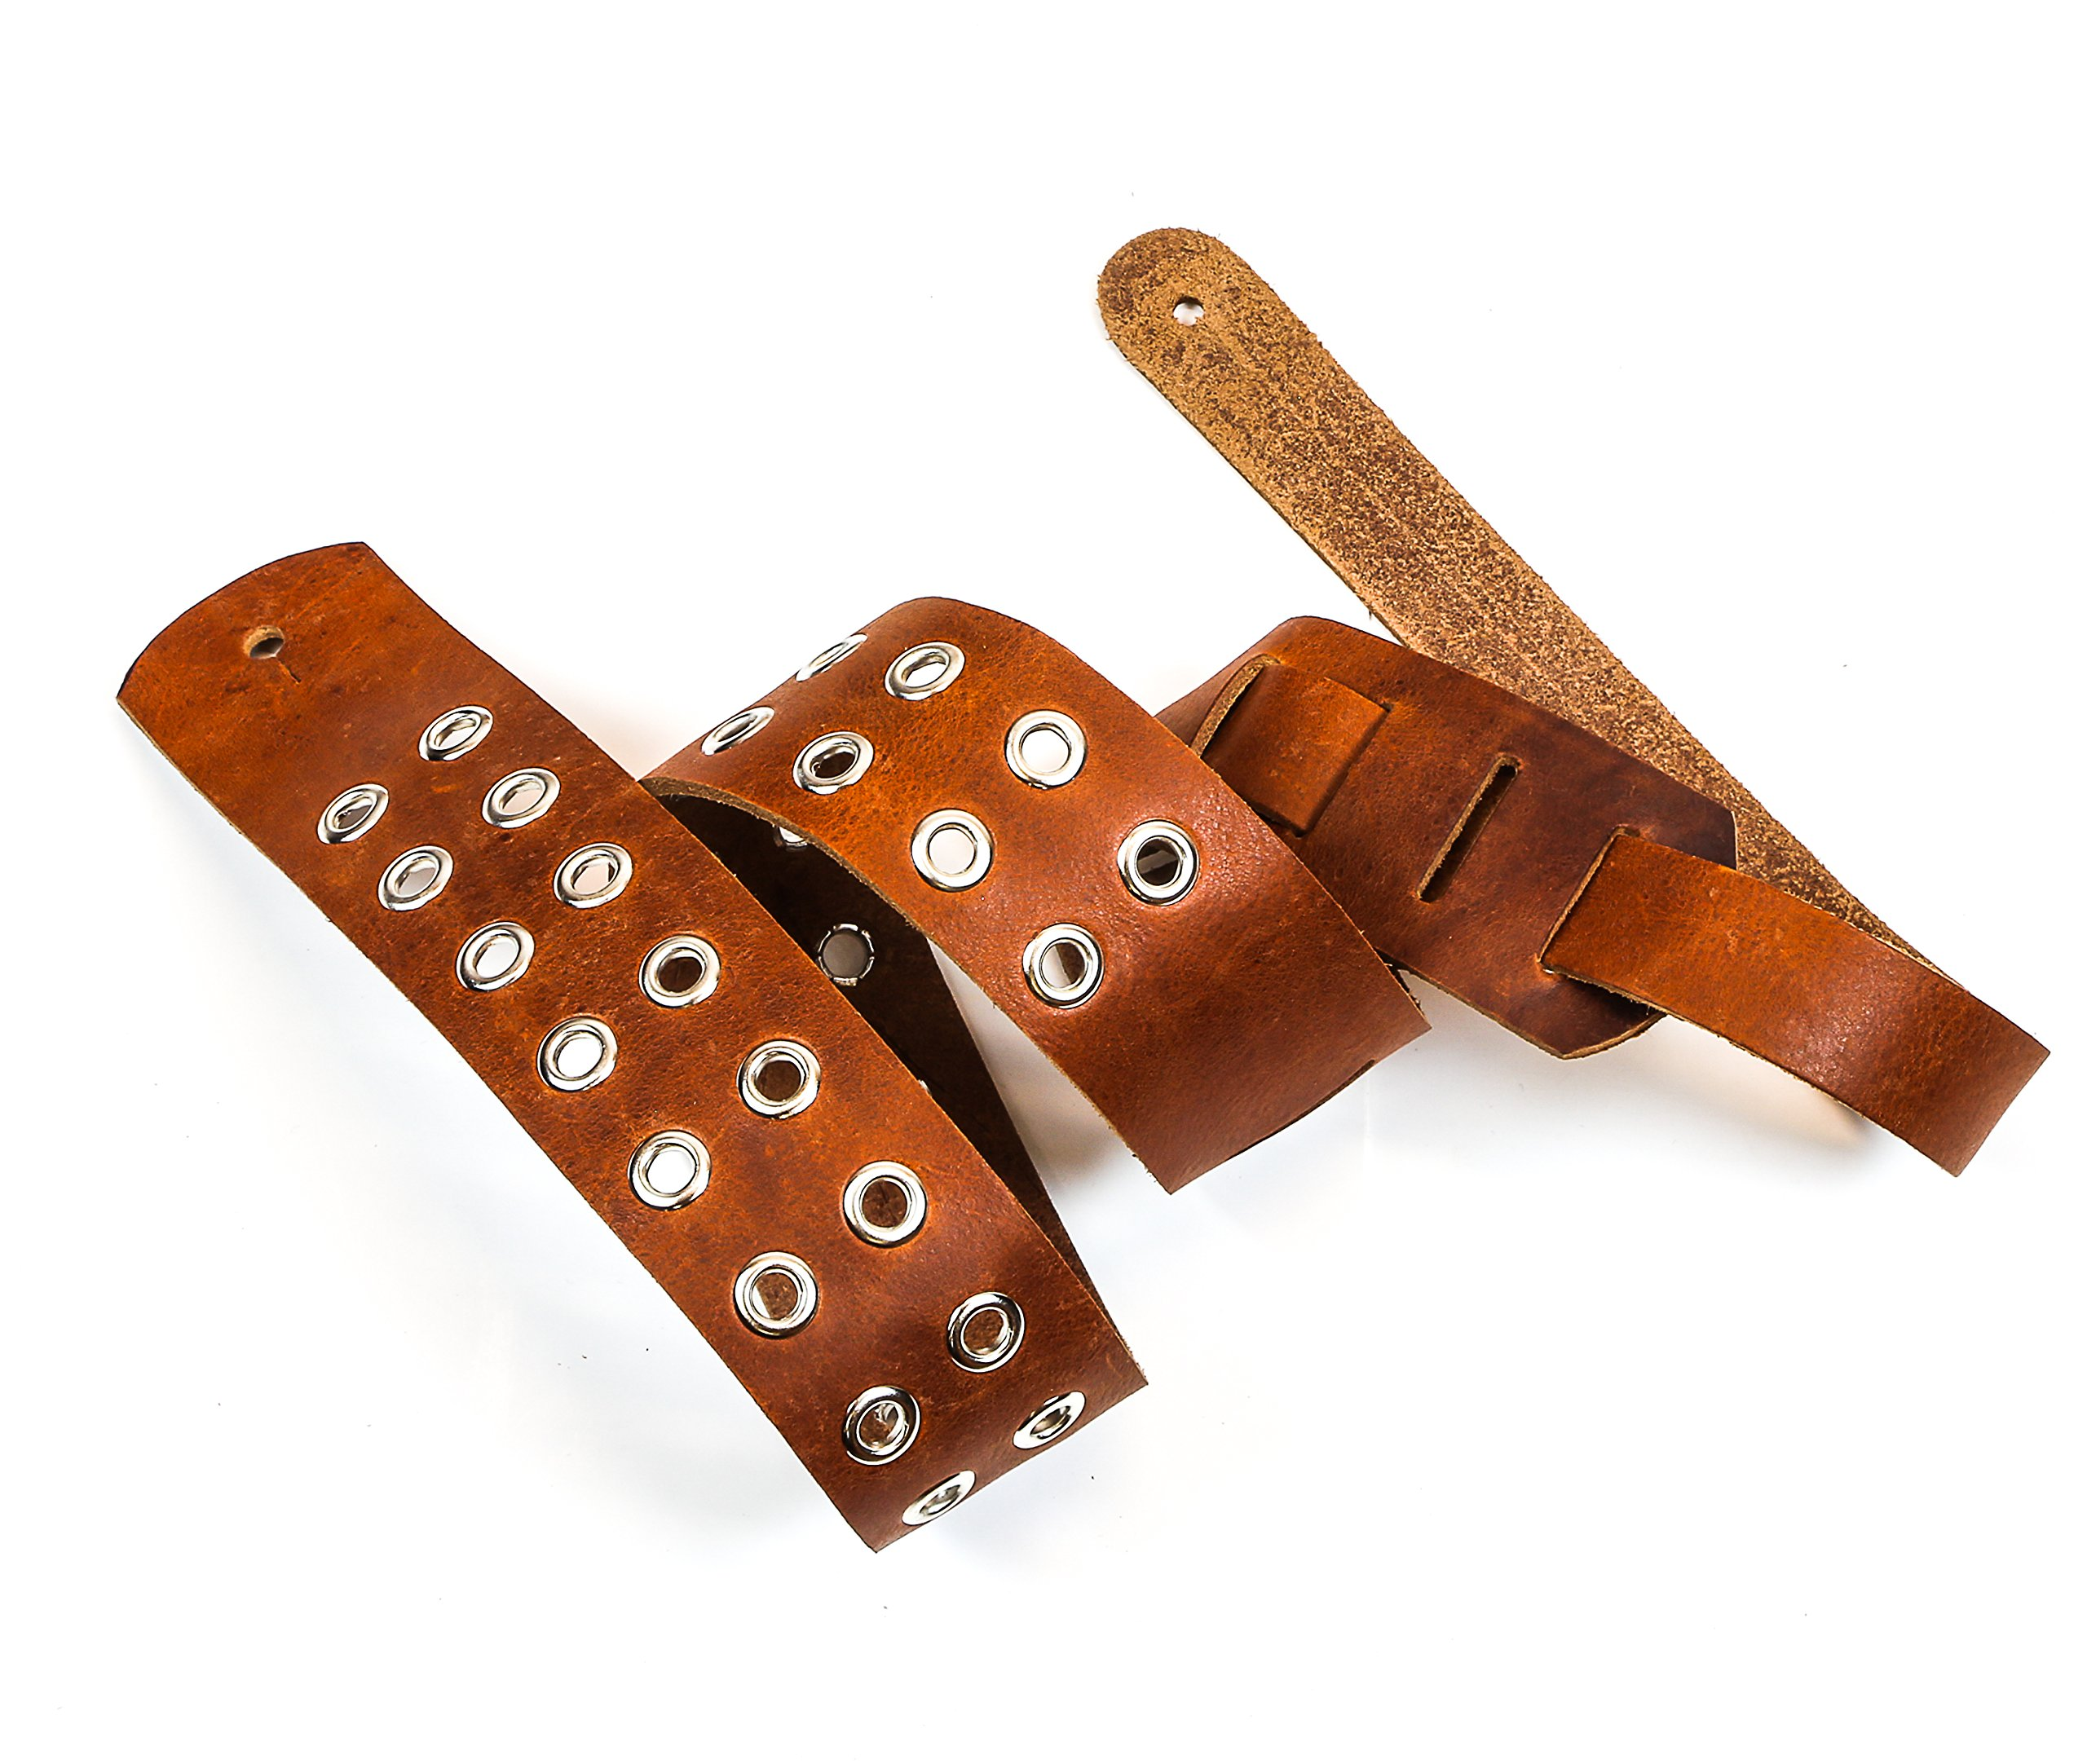 Funk Plus Genuine Leather Grommet Intrinsic Guitar Strap Handmade In USA Tan by funk plus